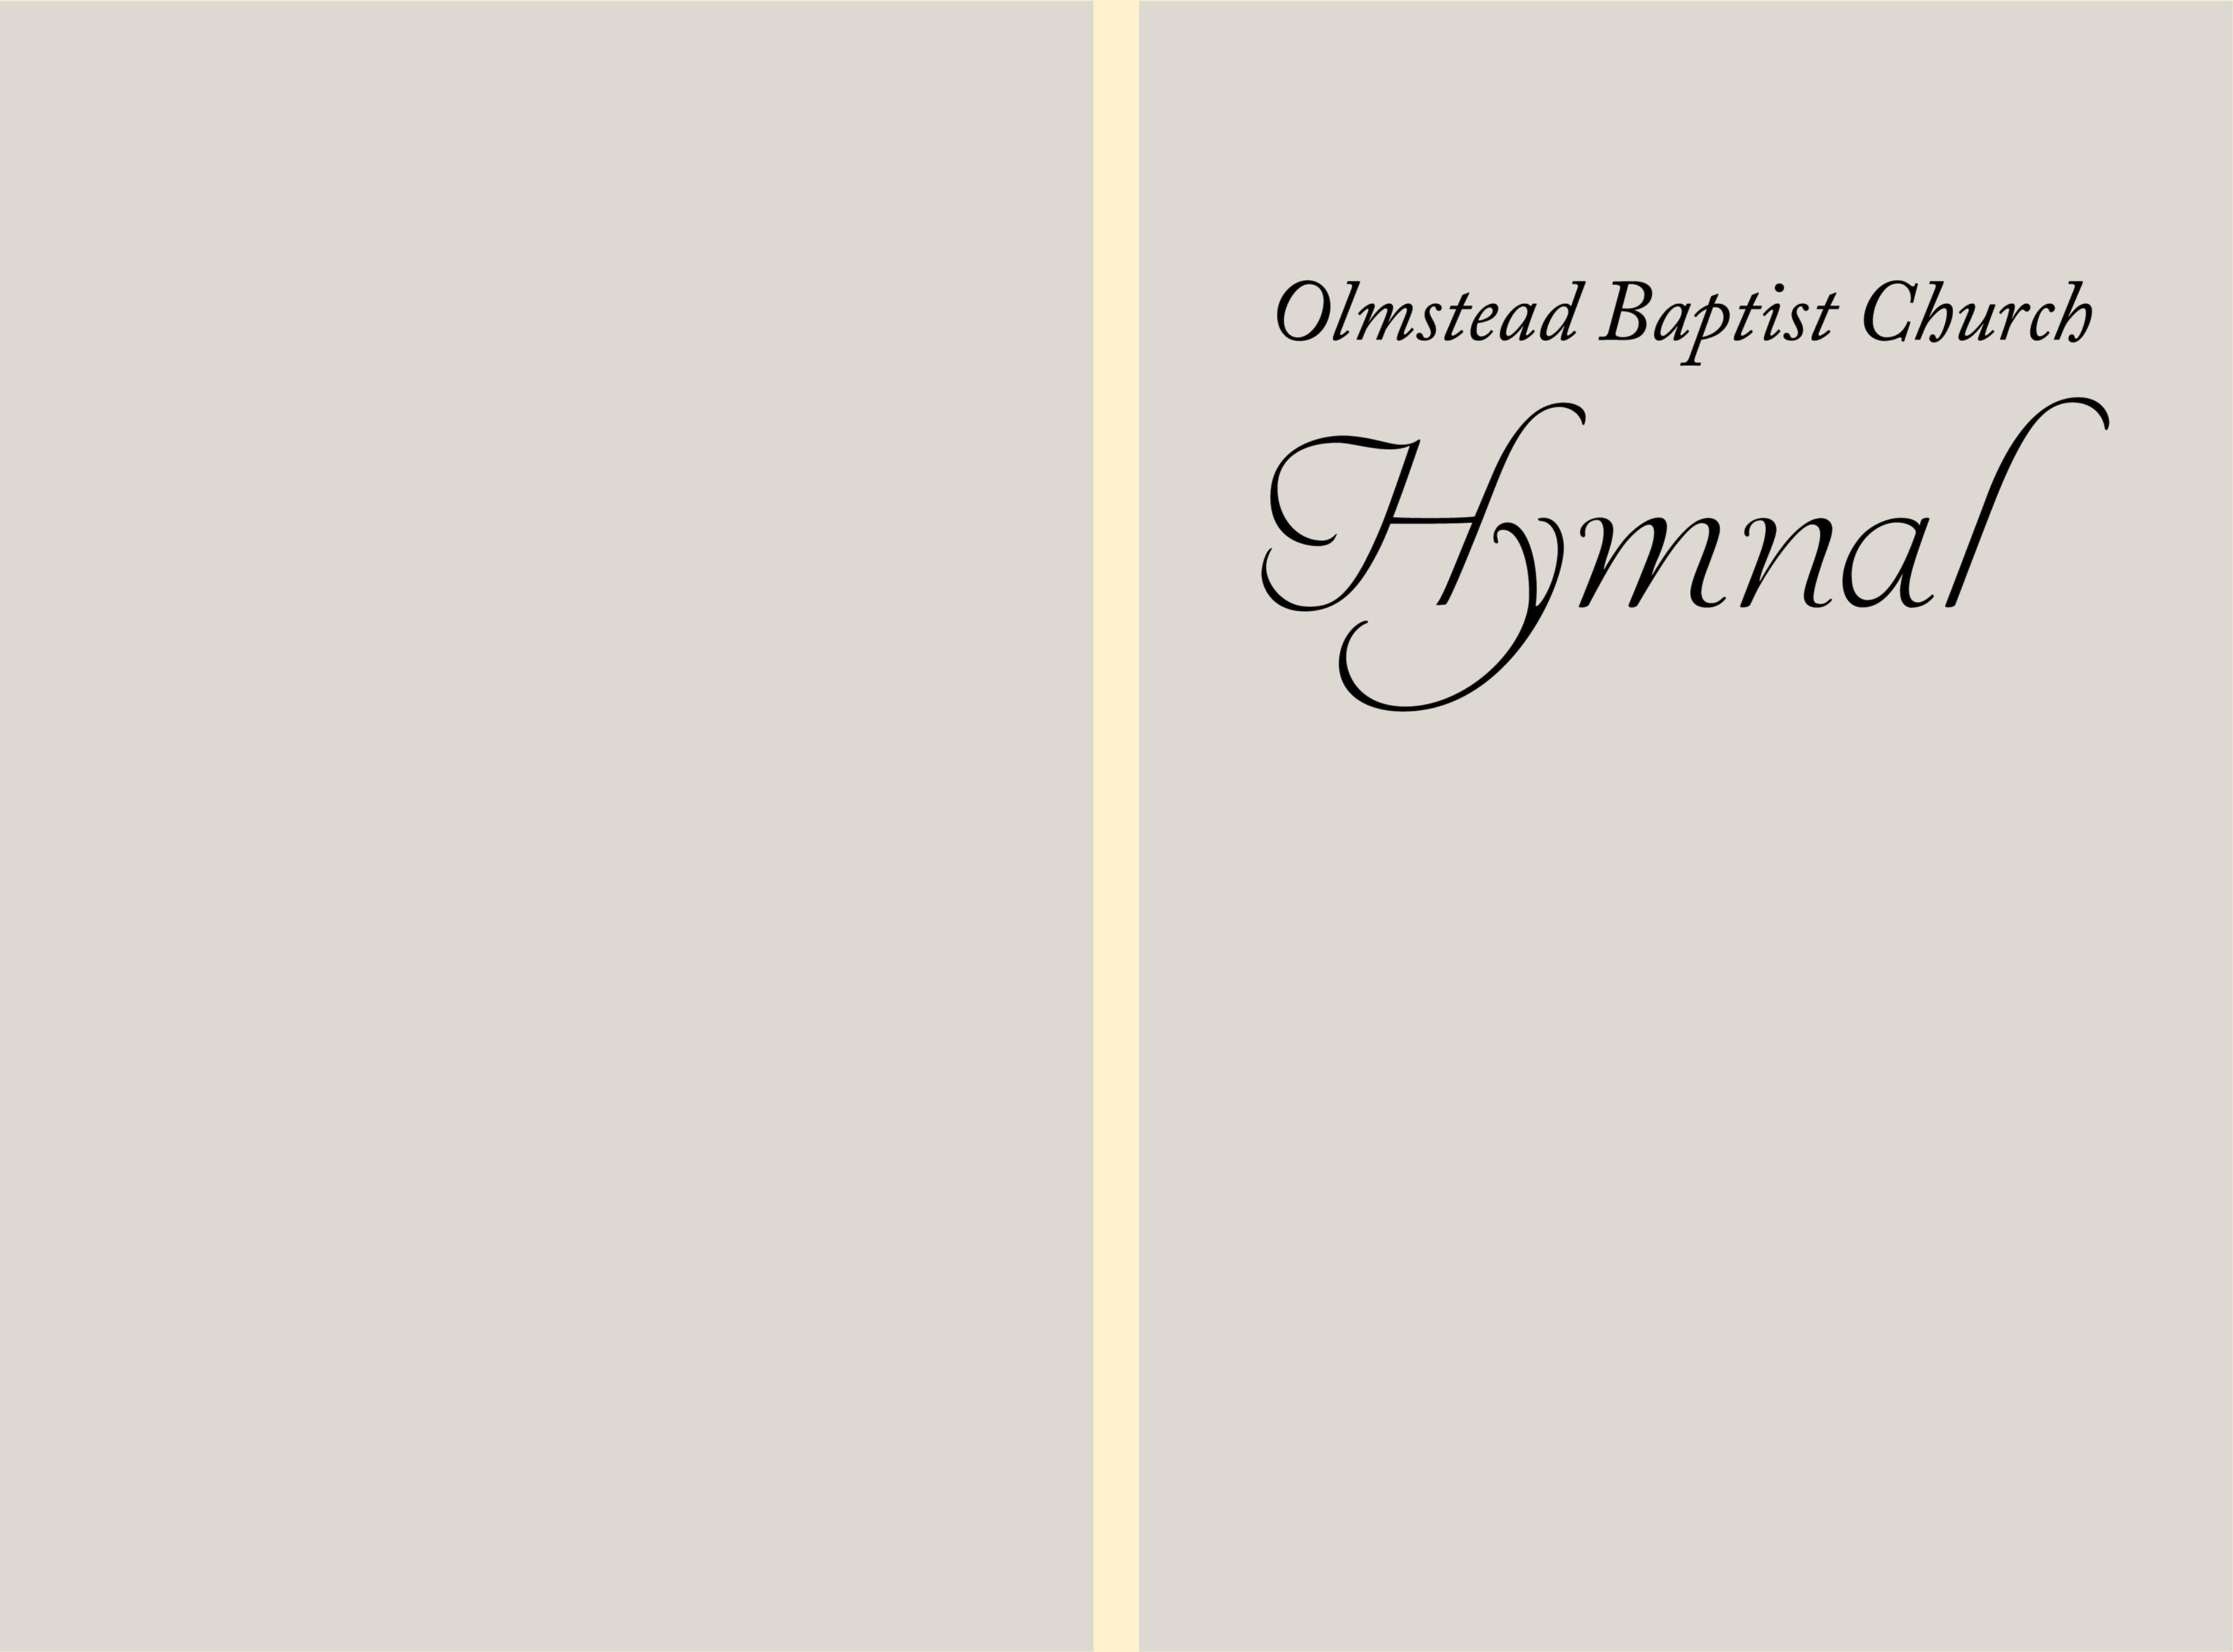 Olmstead Baptist Church Hymnal cover image